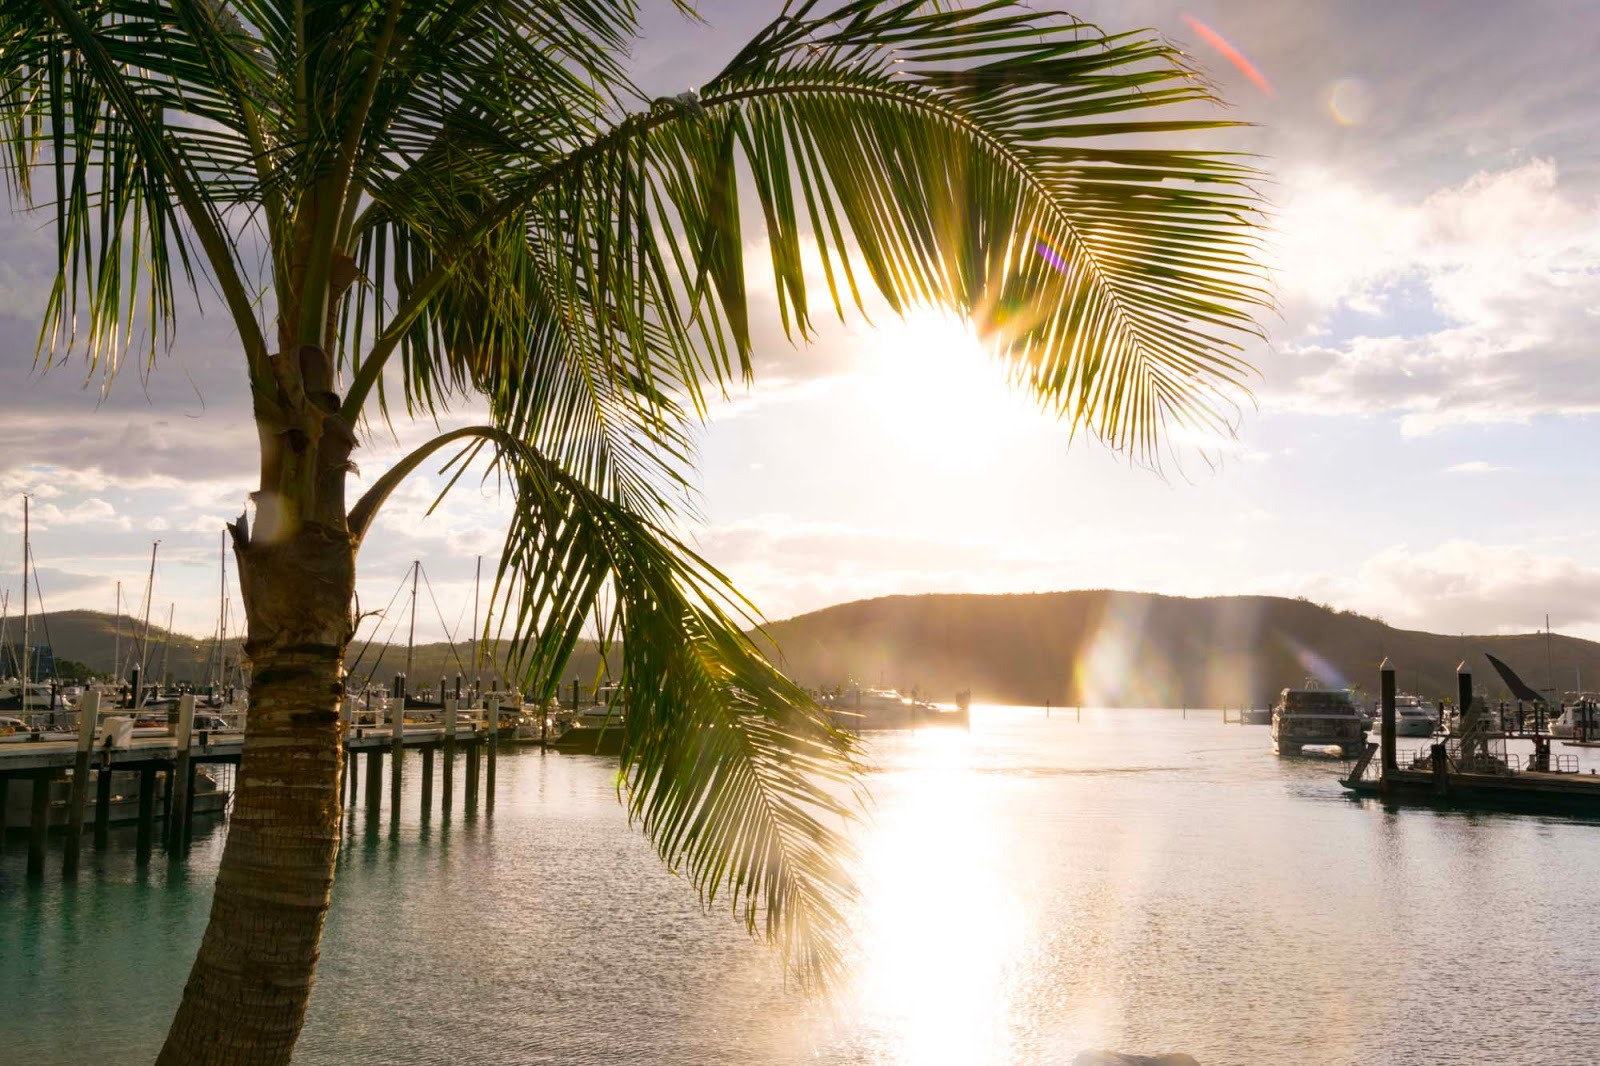 sunset over hamilton island marina